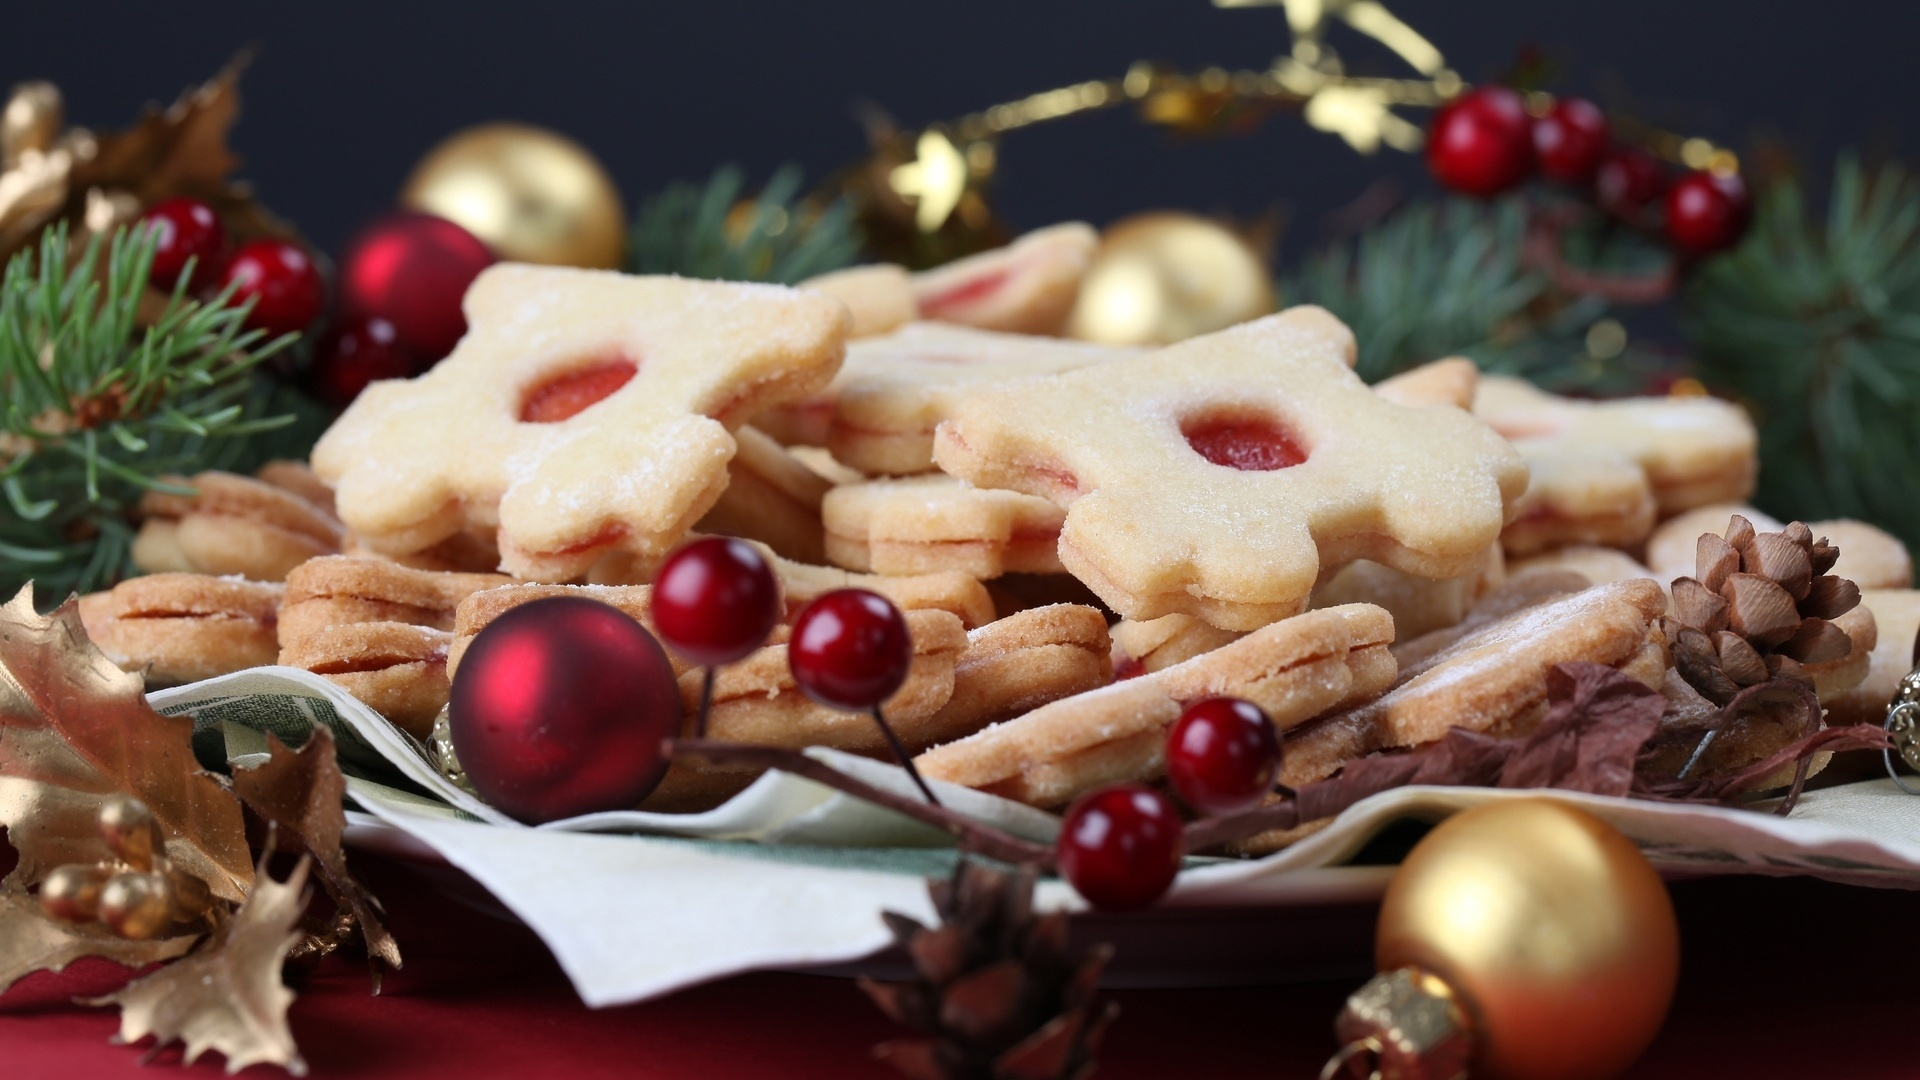 Christmas Dishes Wallpaper